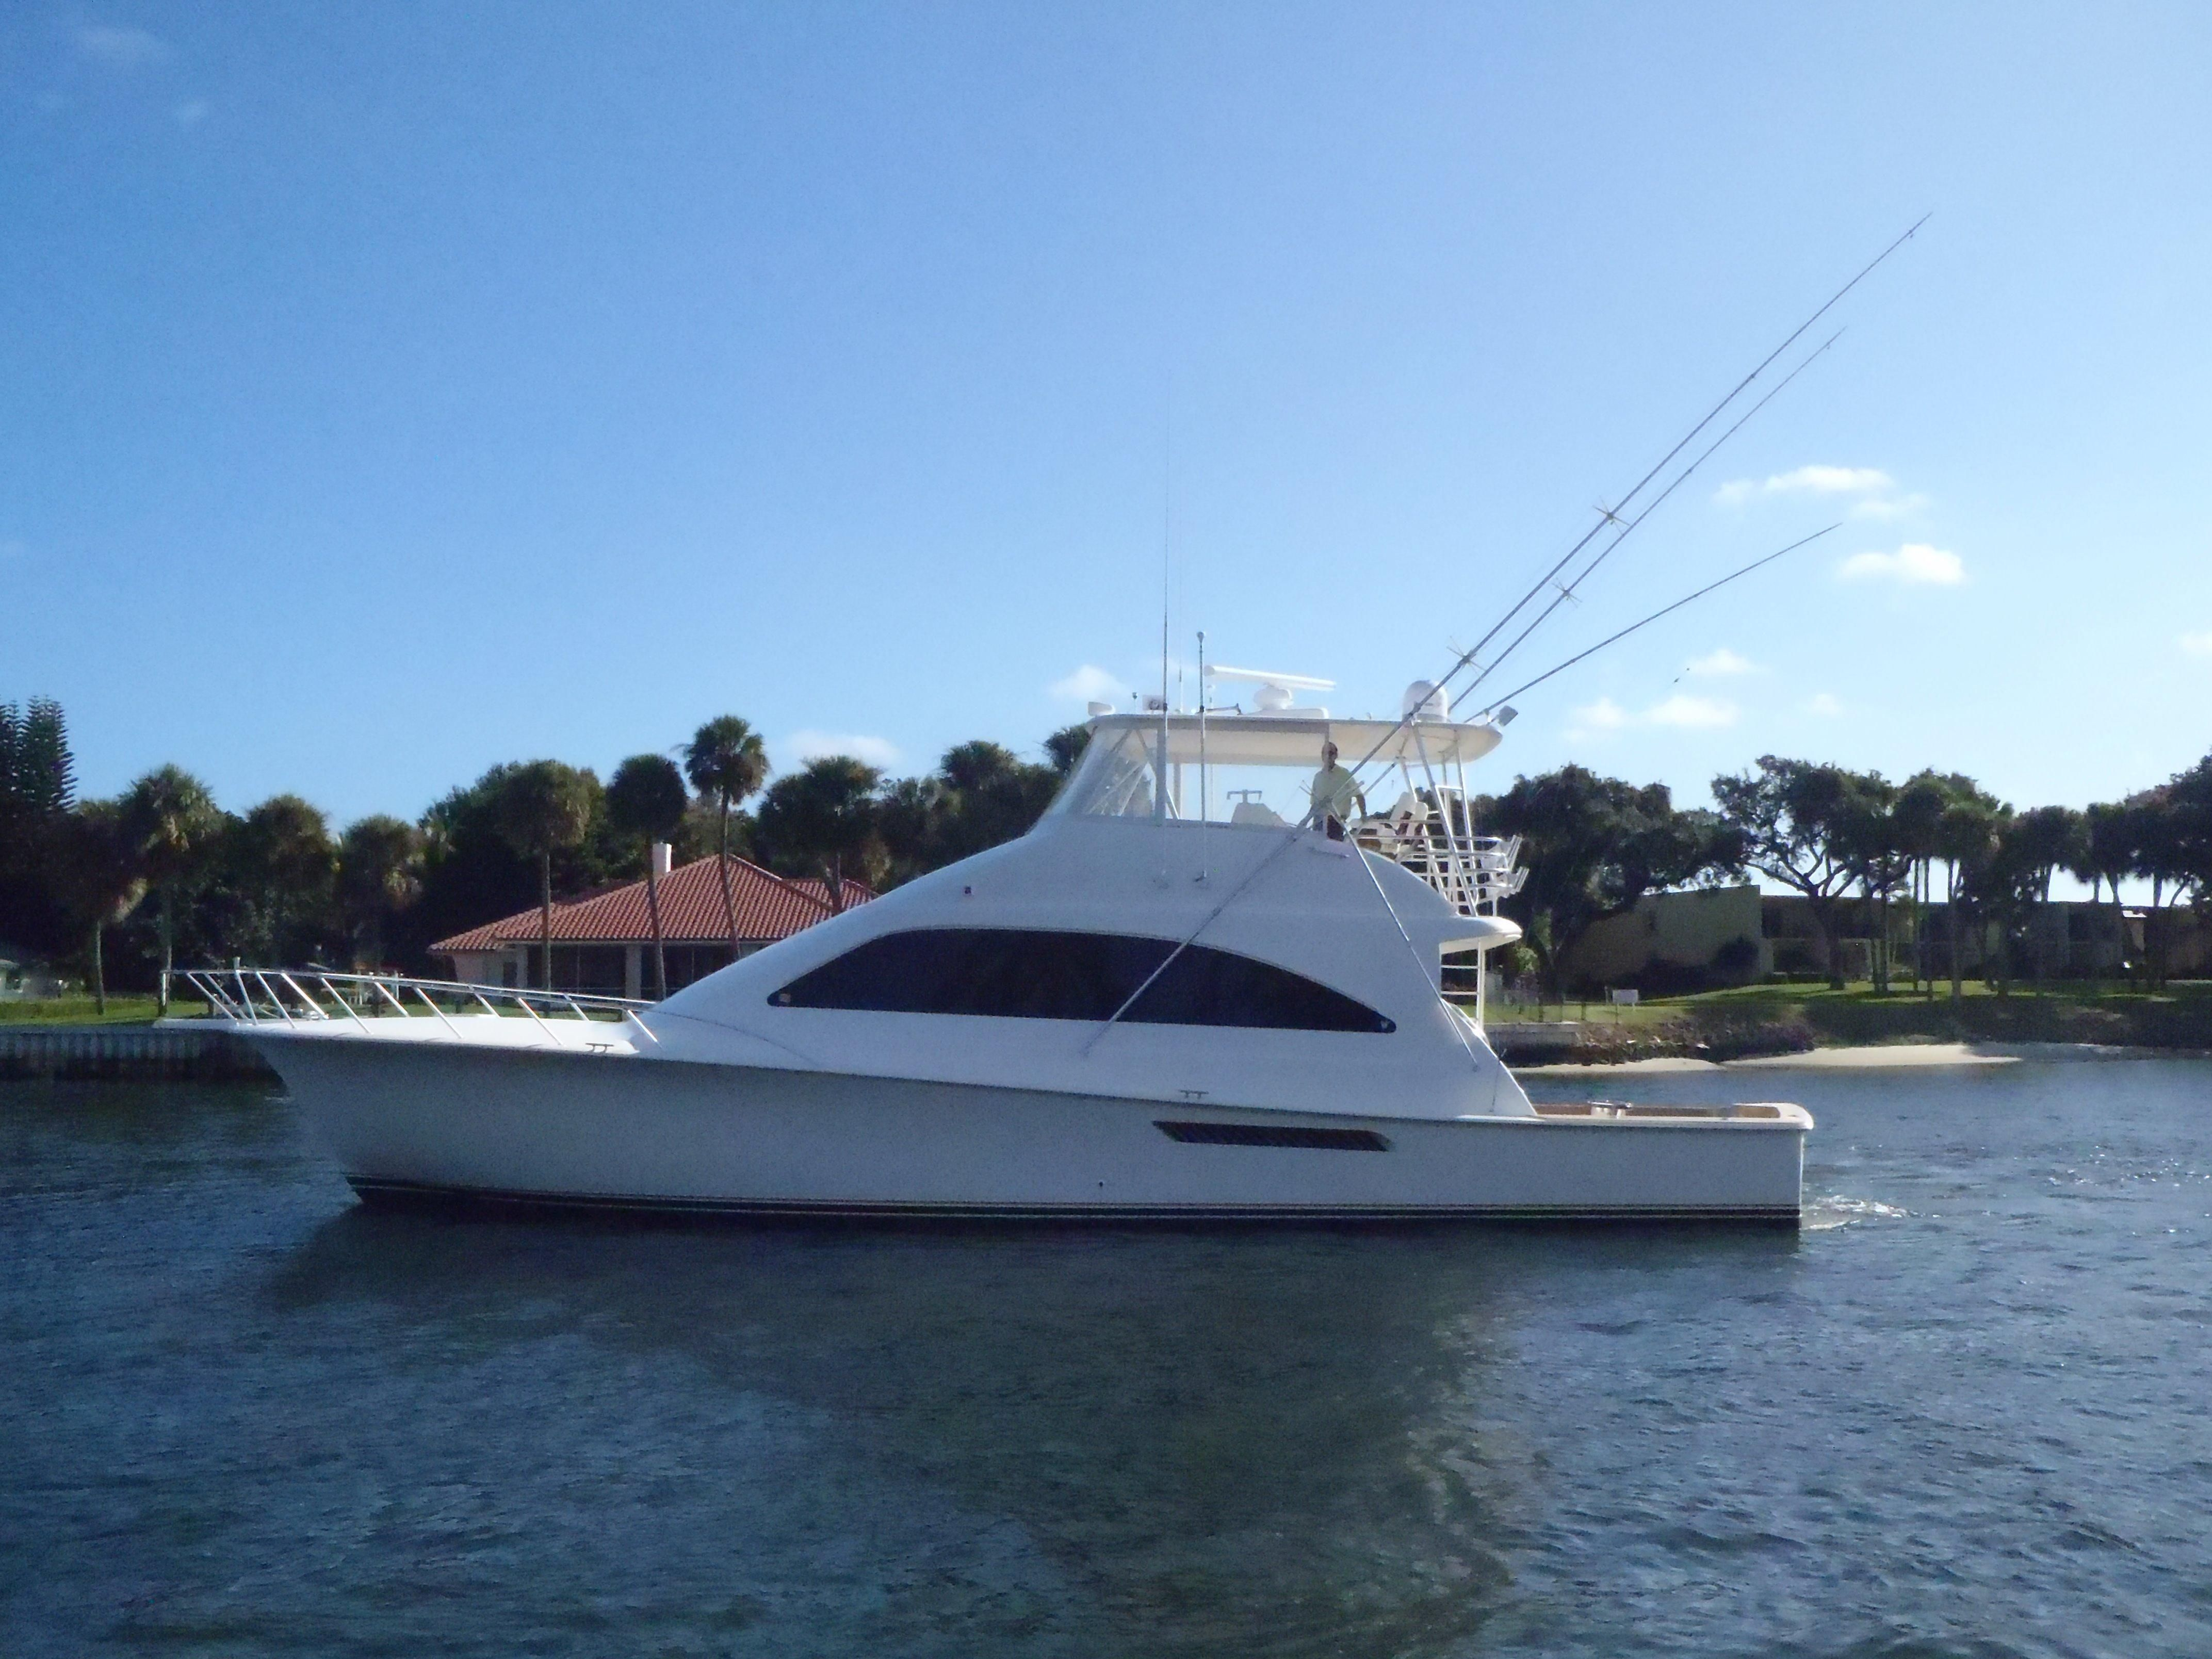 2006 ocean yachts 57 super sport power boat for sale www for Ocean yachts 48 motor yacht for sale